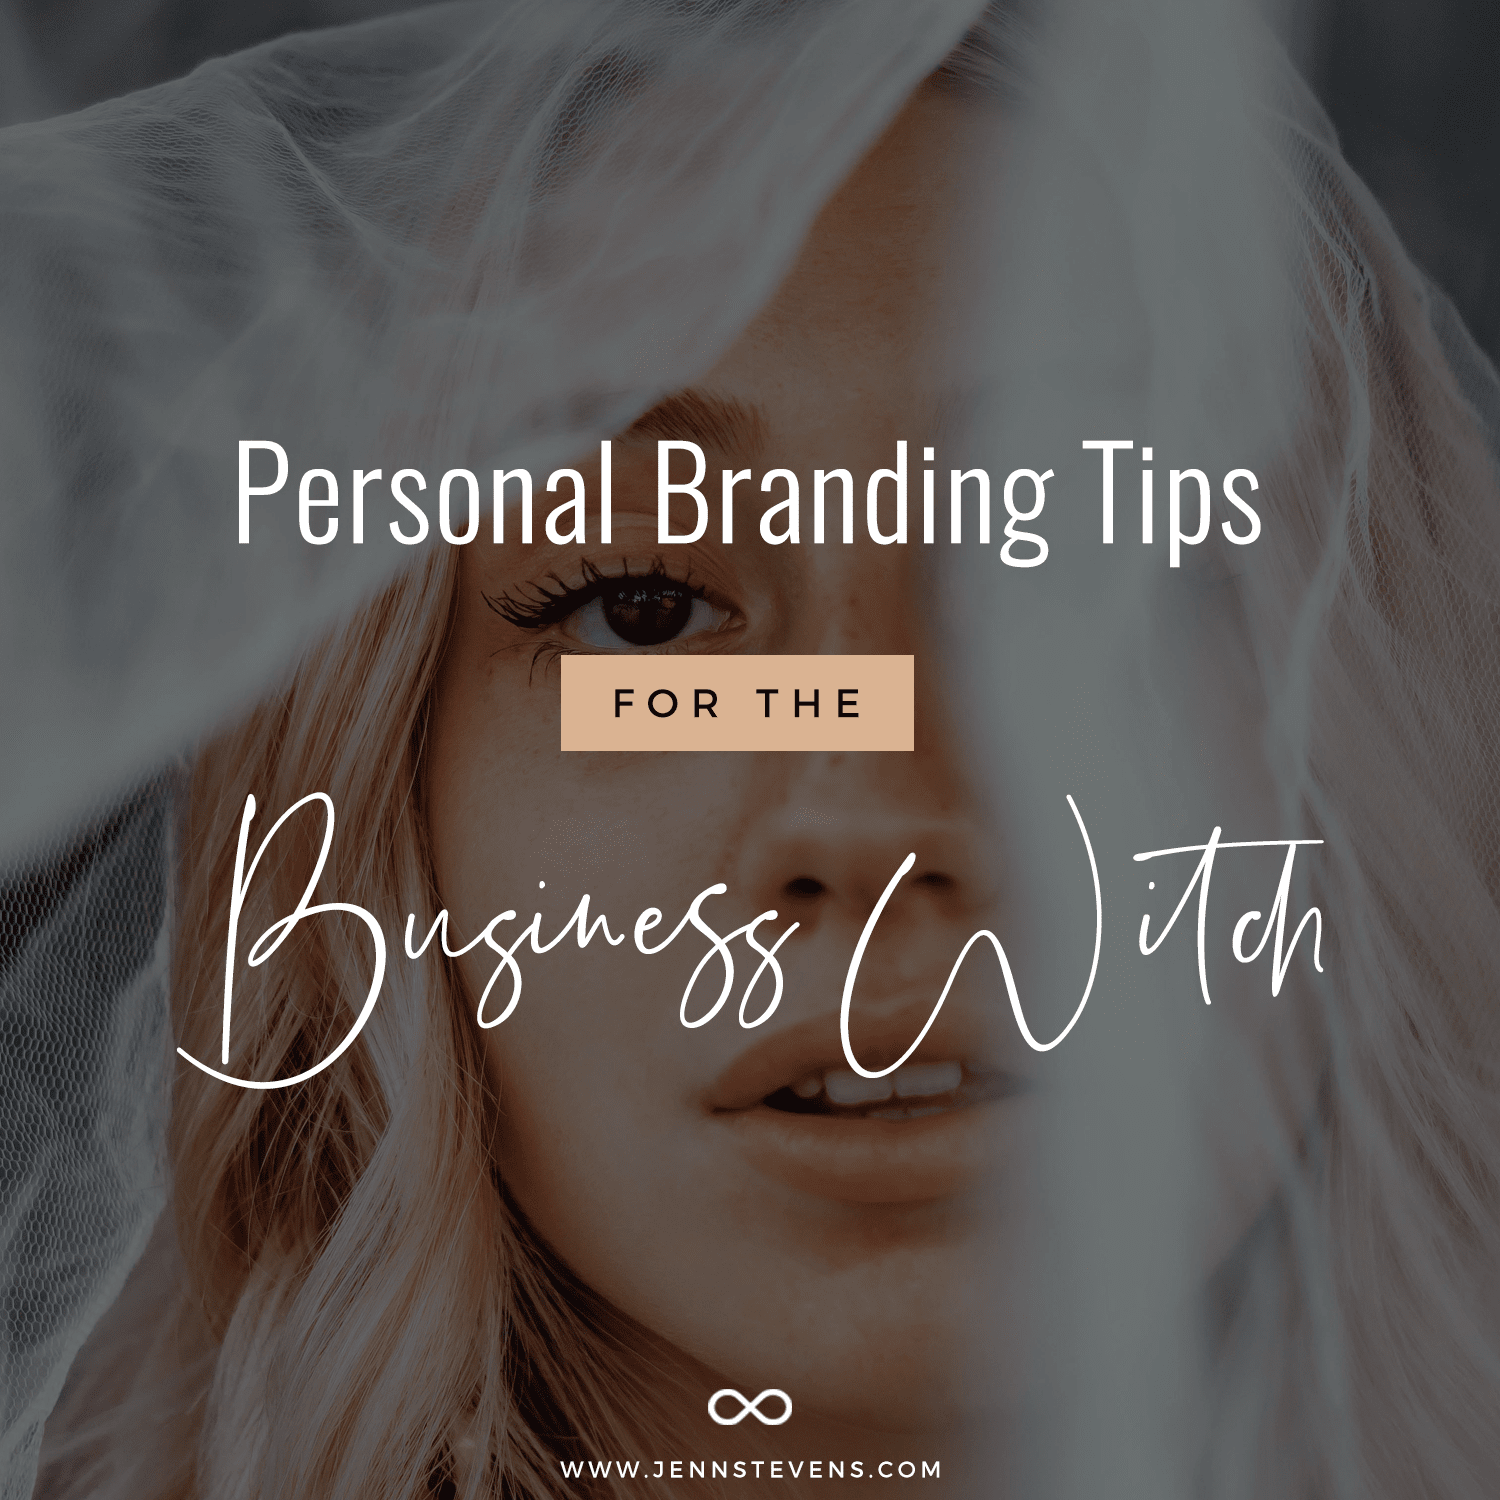 3 Must-Know Personal Branding Tips For The Aspiring Business Witch